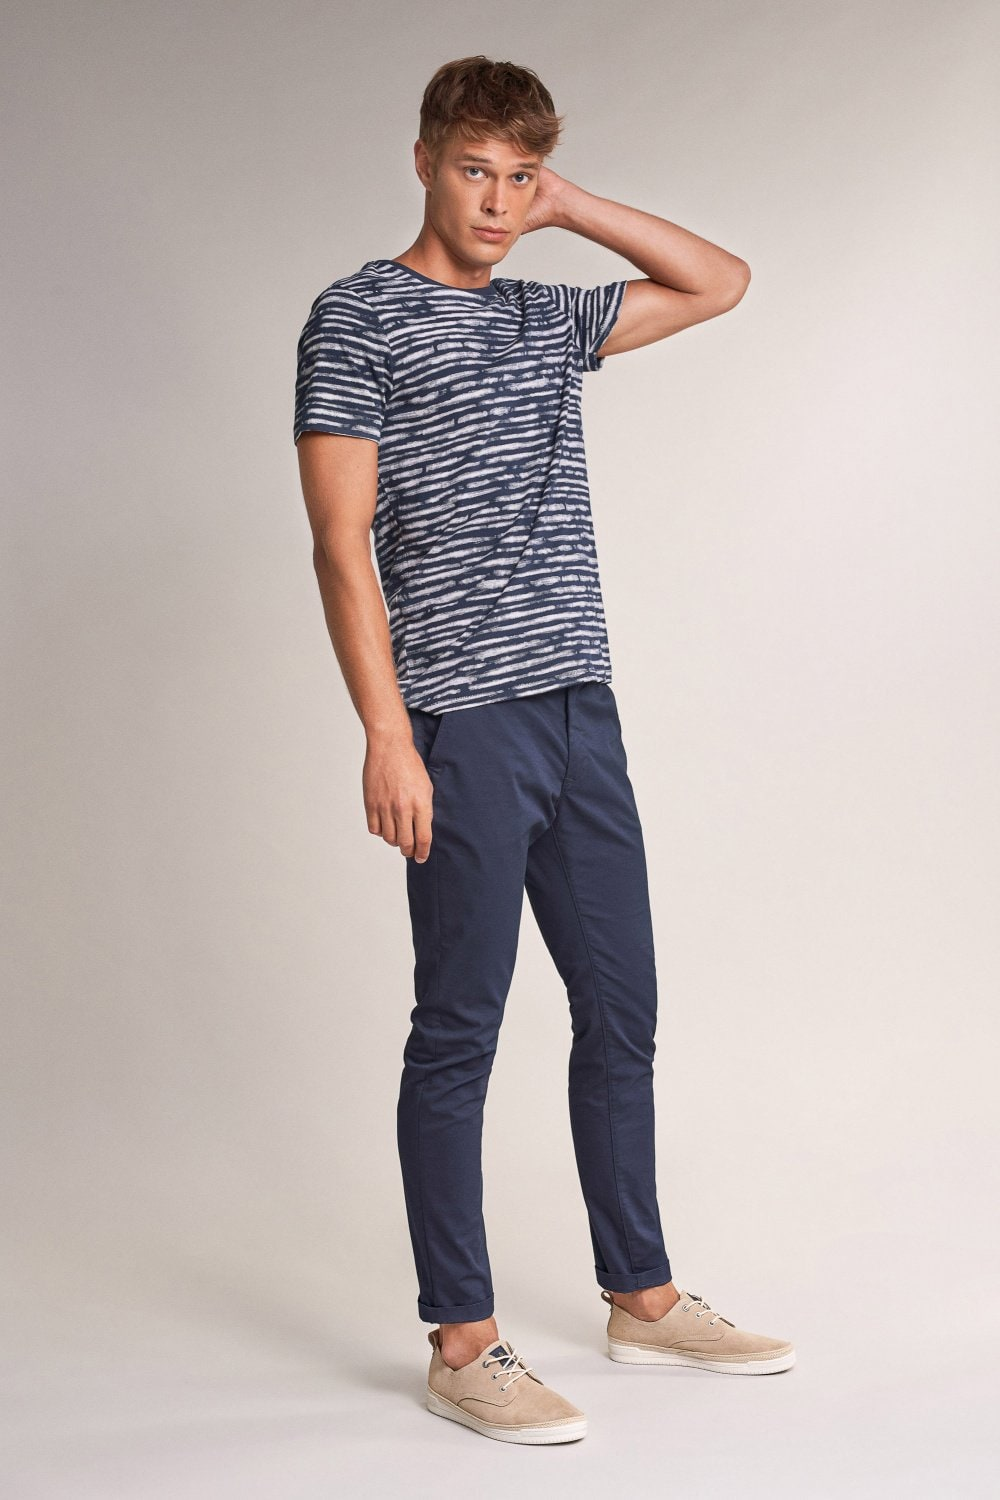 Blue striped t-shirt - Salsa